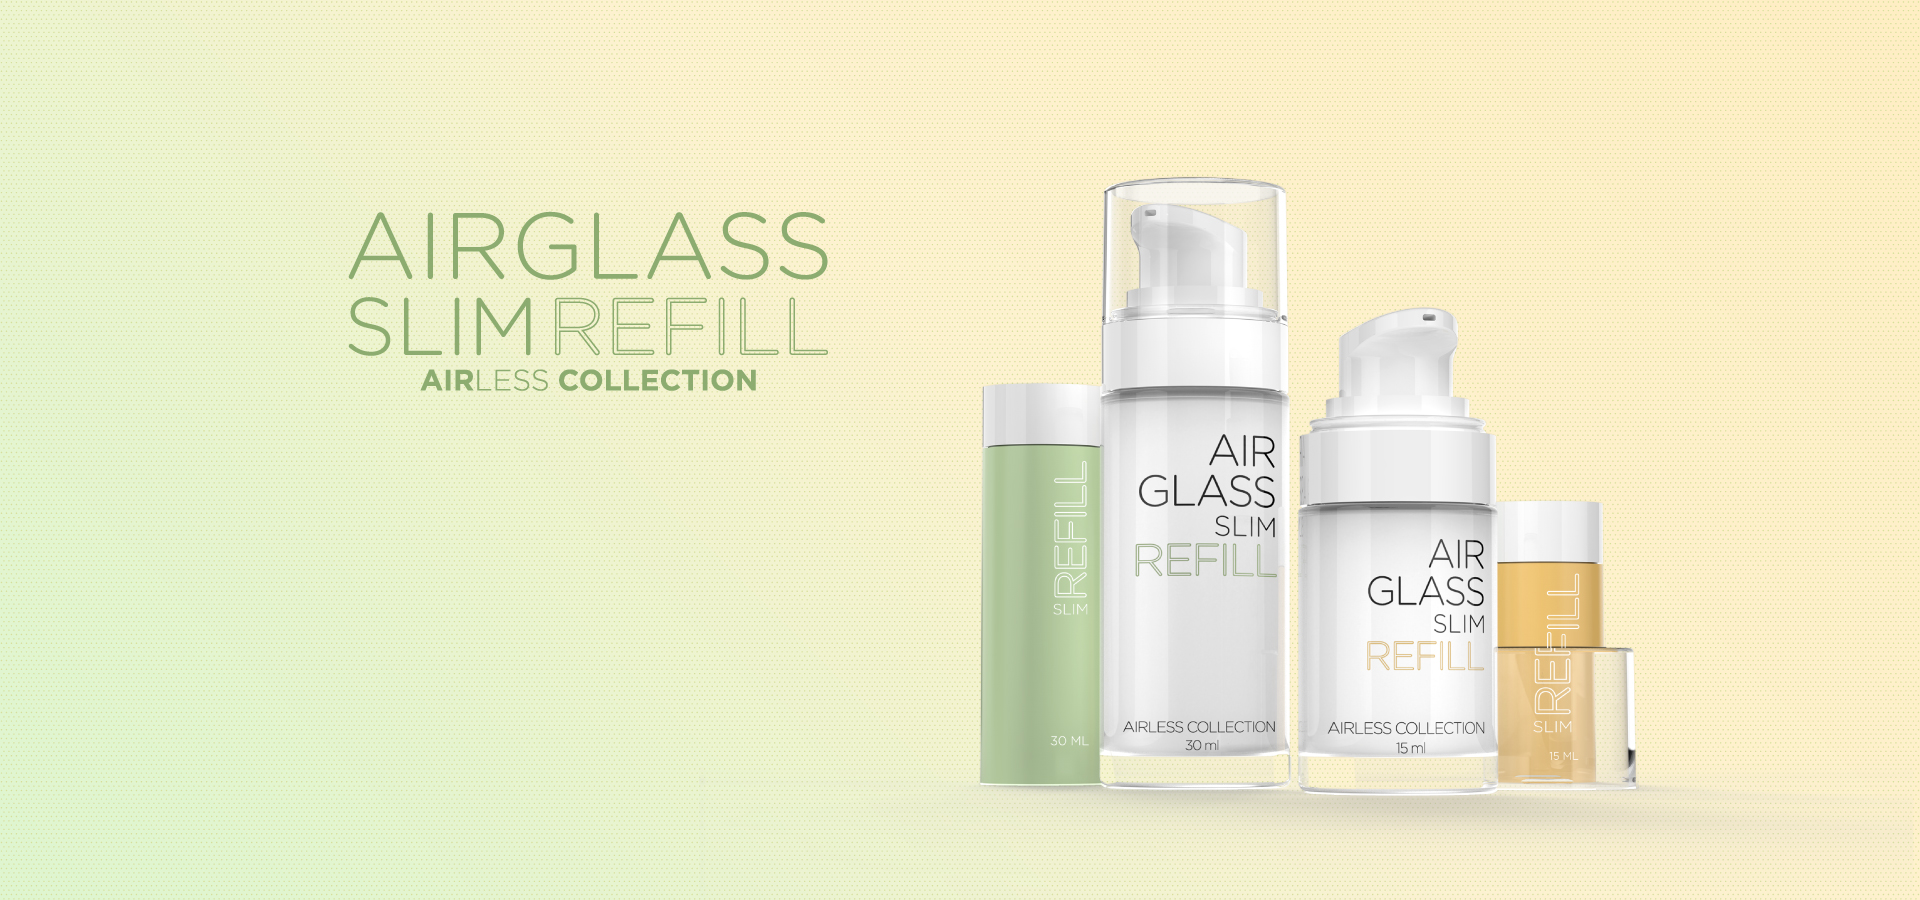 Airglass Slim Refill Packaging - Premi Beauty Industries